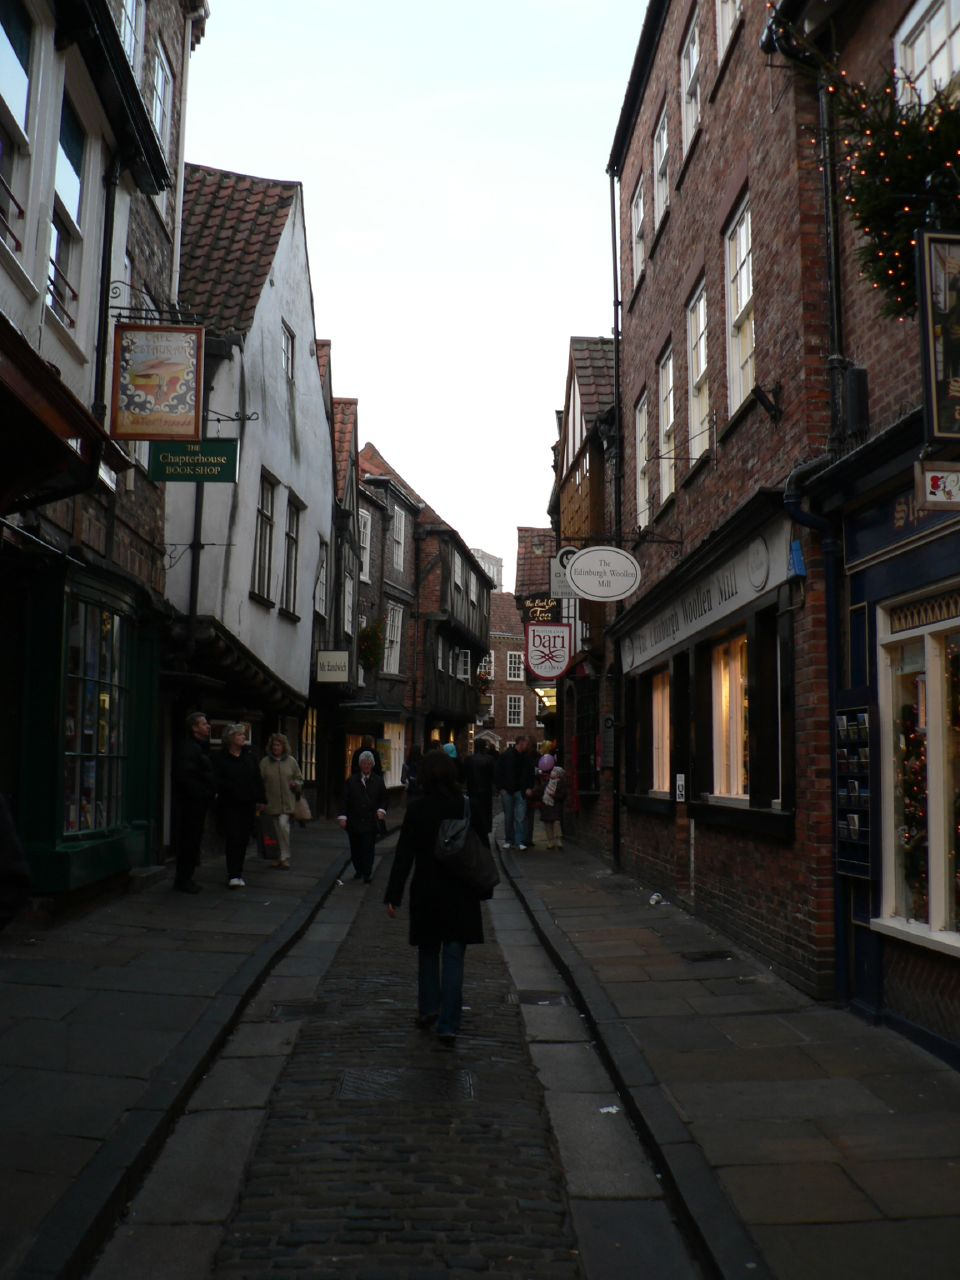 Shopping is one of the top reasons to visit York